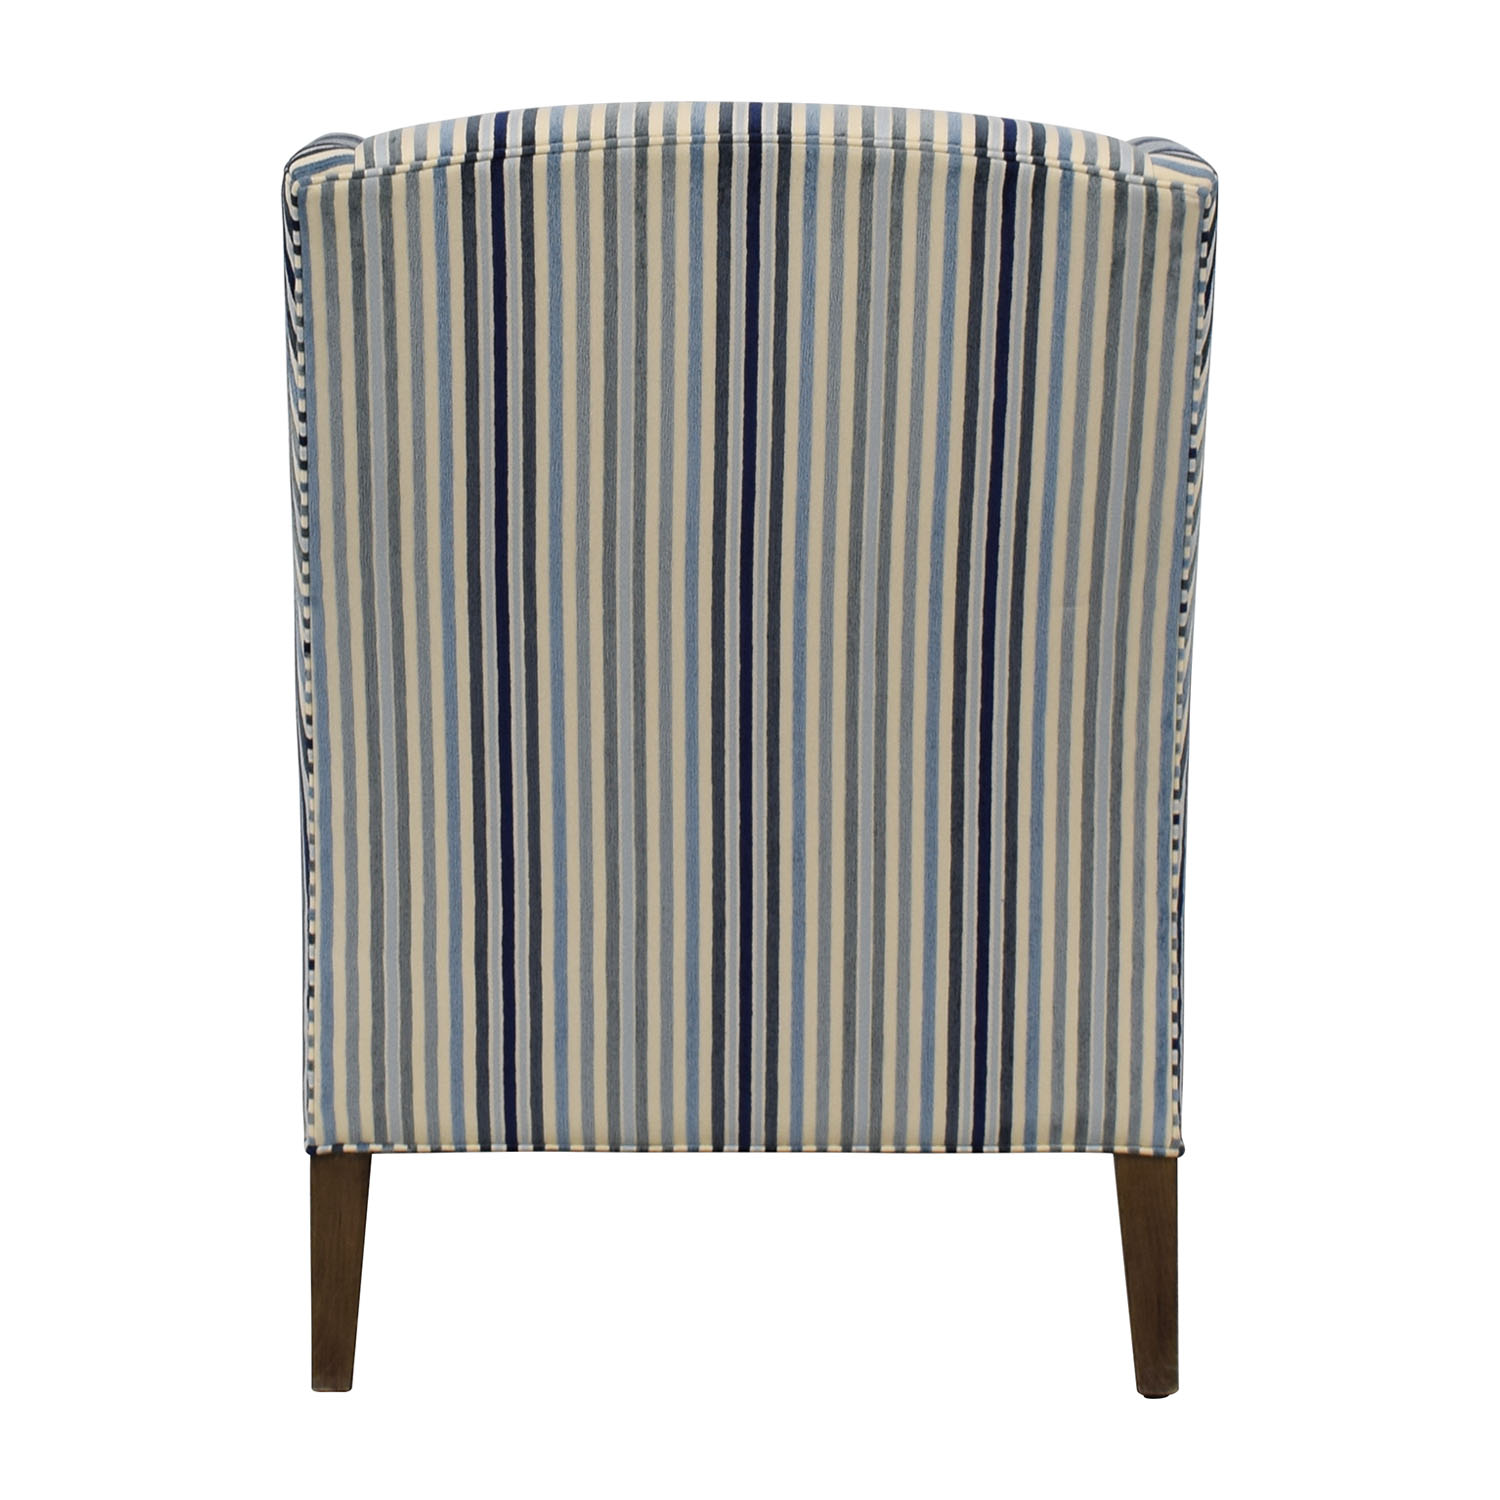 Custom Fabric Accent Chairs.87 Off Ethan Allen Ethan Allen Custom Upholstered Striped Accent Chair Chairs